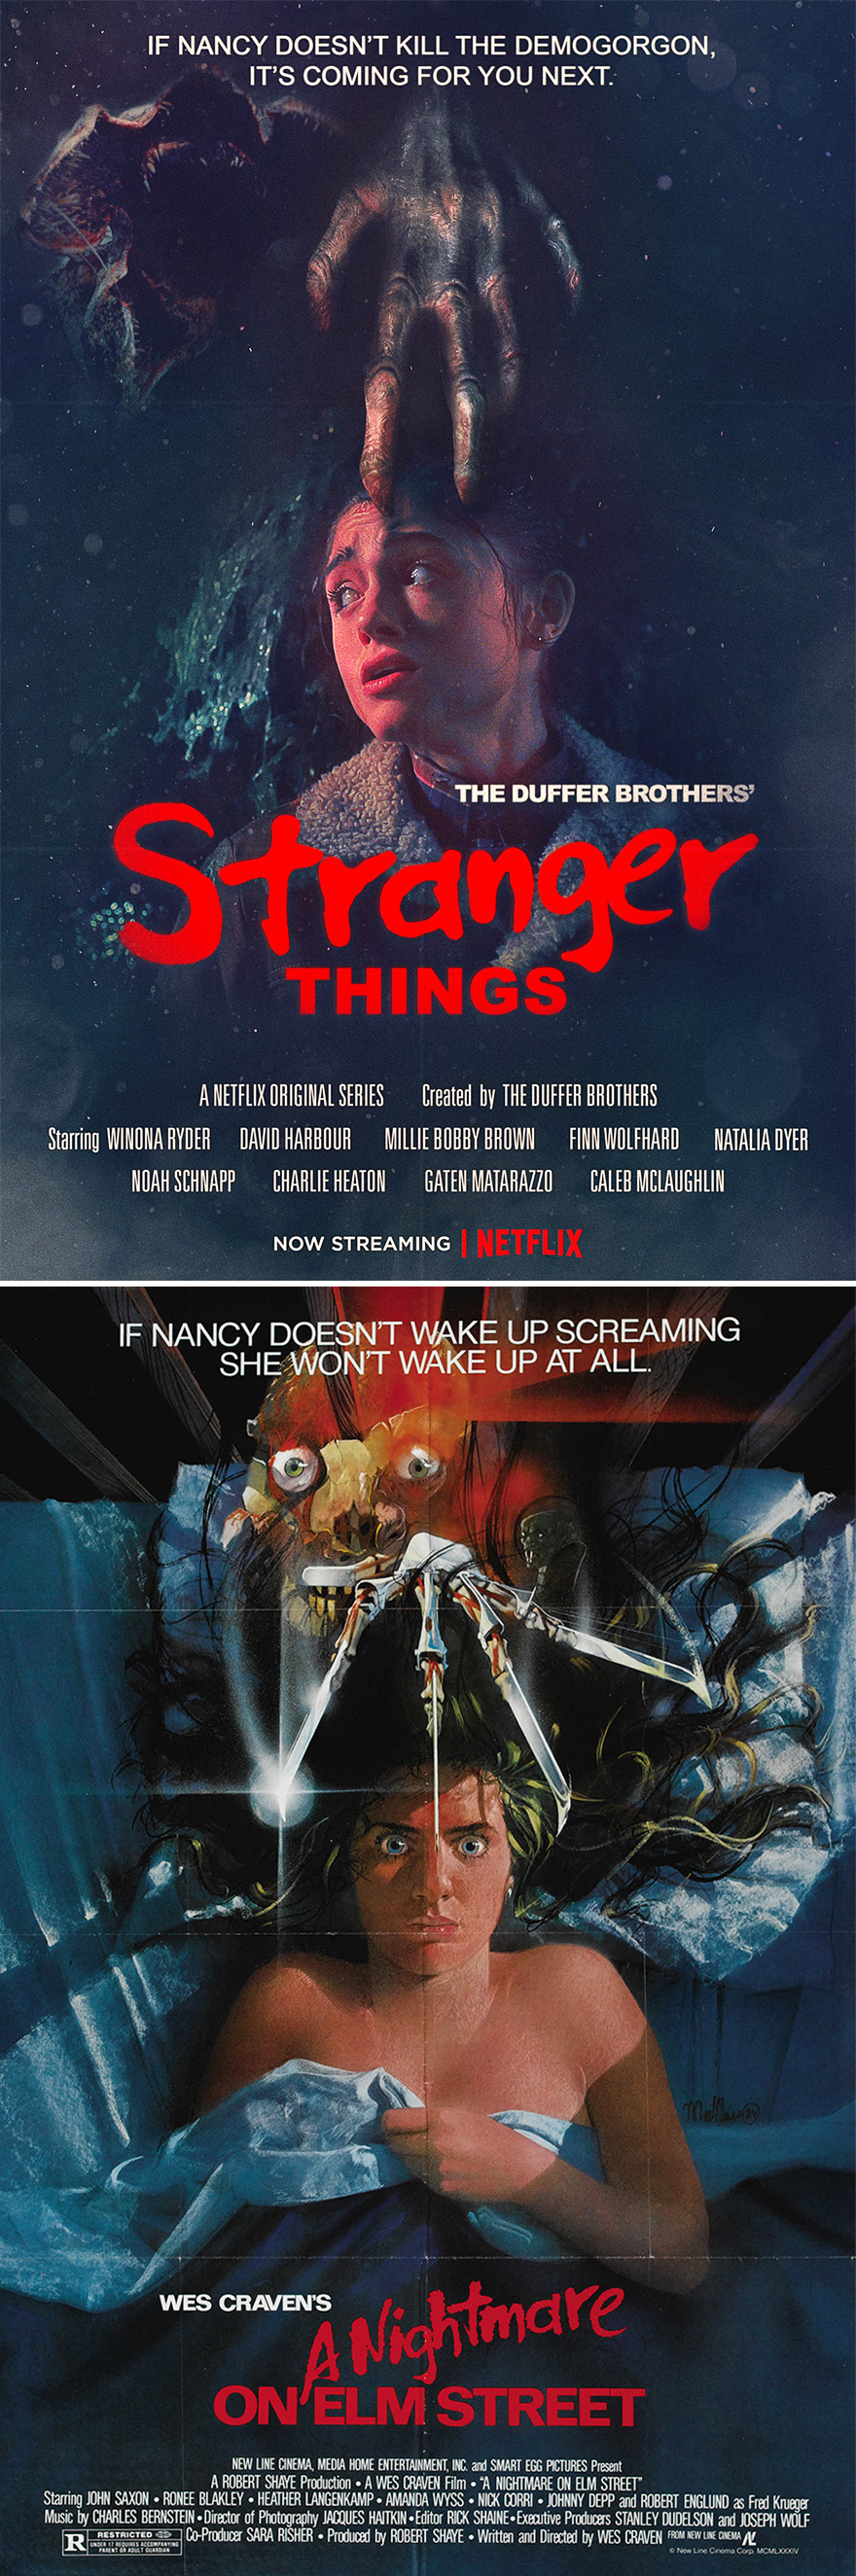 stranger things pelis miticas10